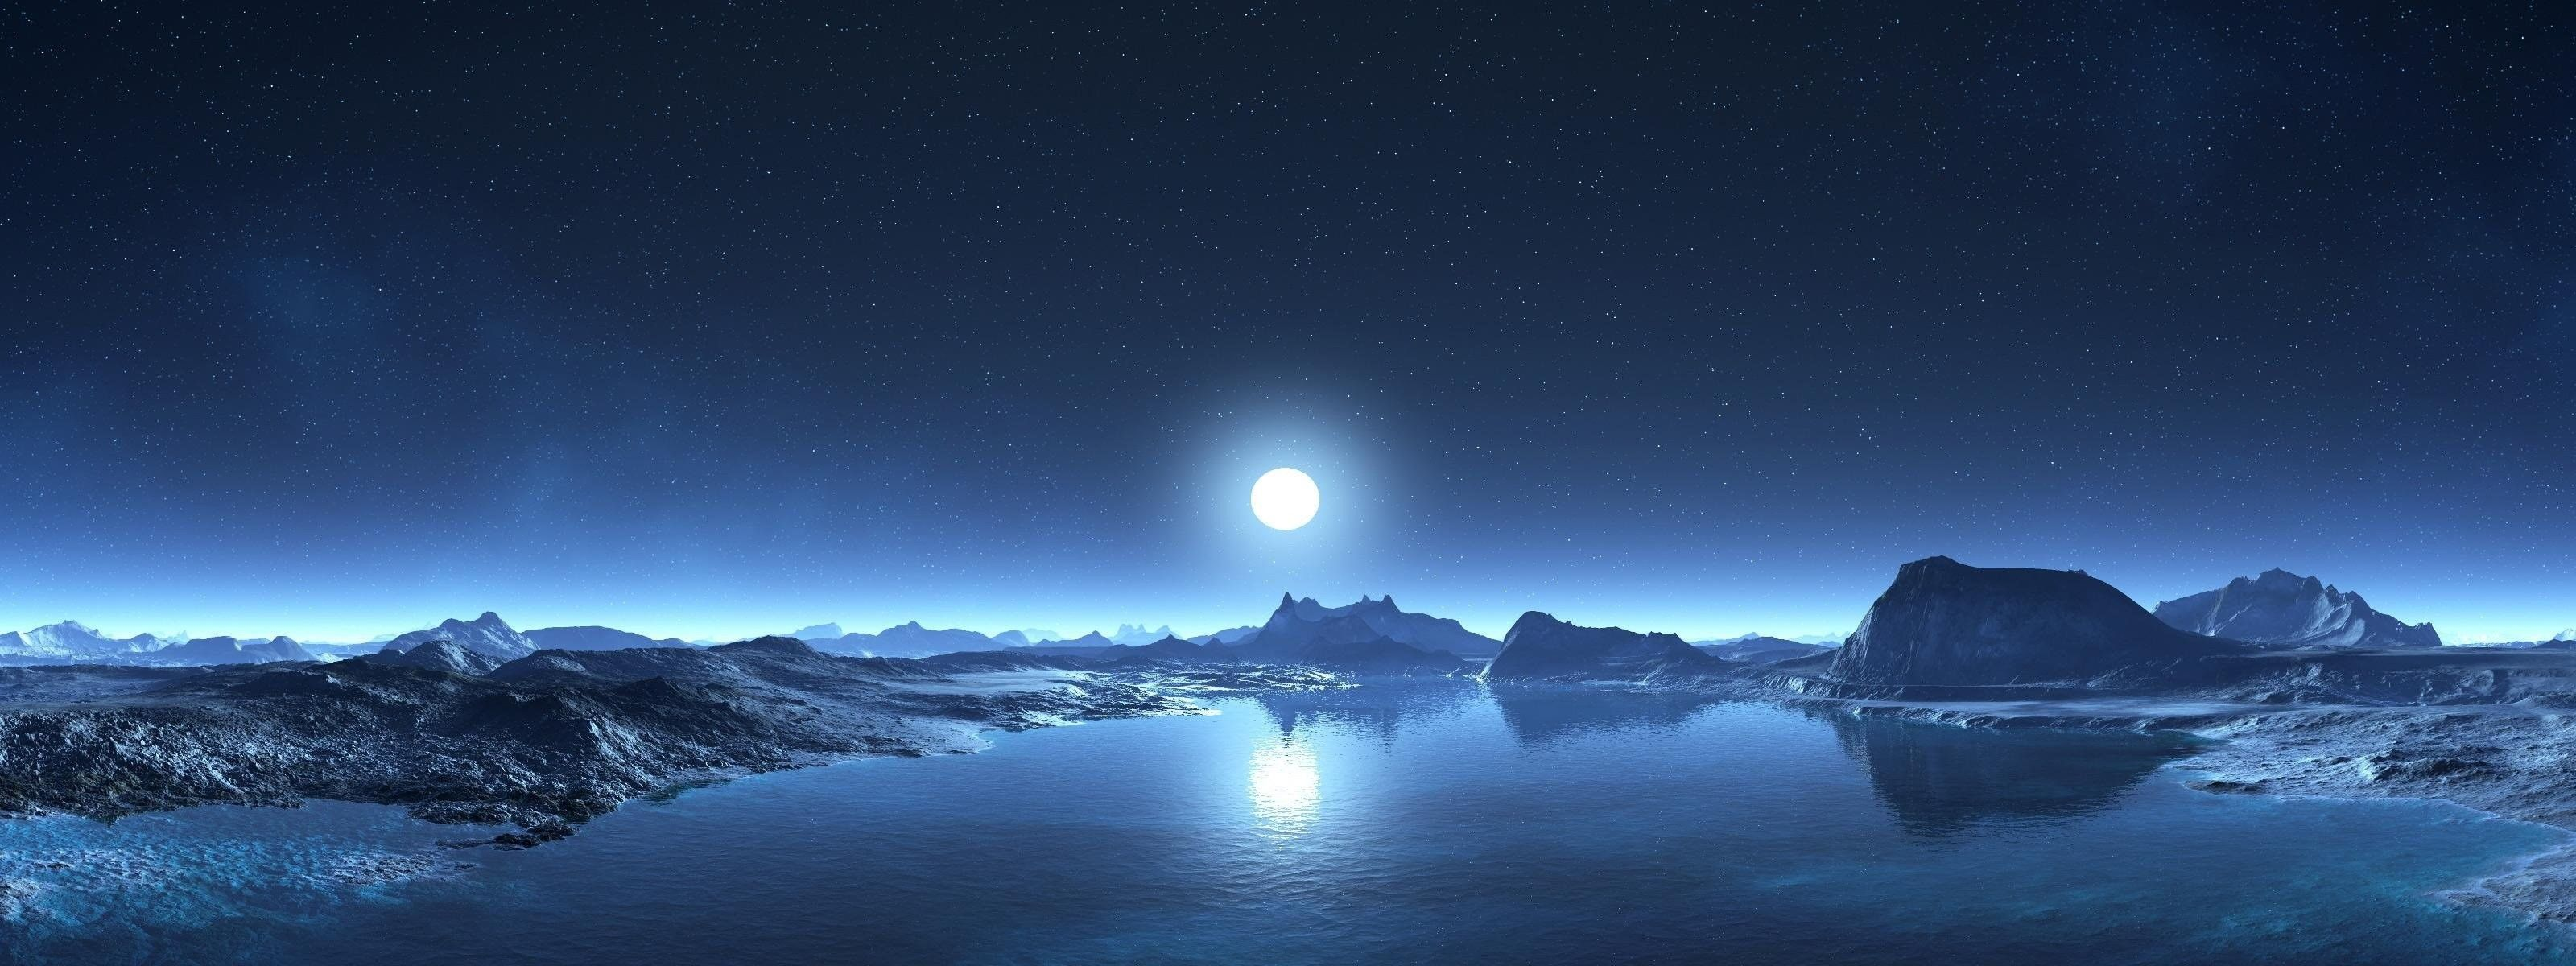 3200x1200 Moon Mountain Water Sky Star Beach Background Images Sky Digital Digital Art Fantasy